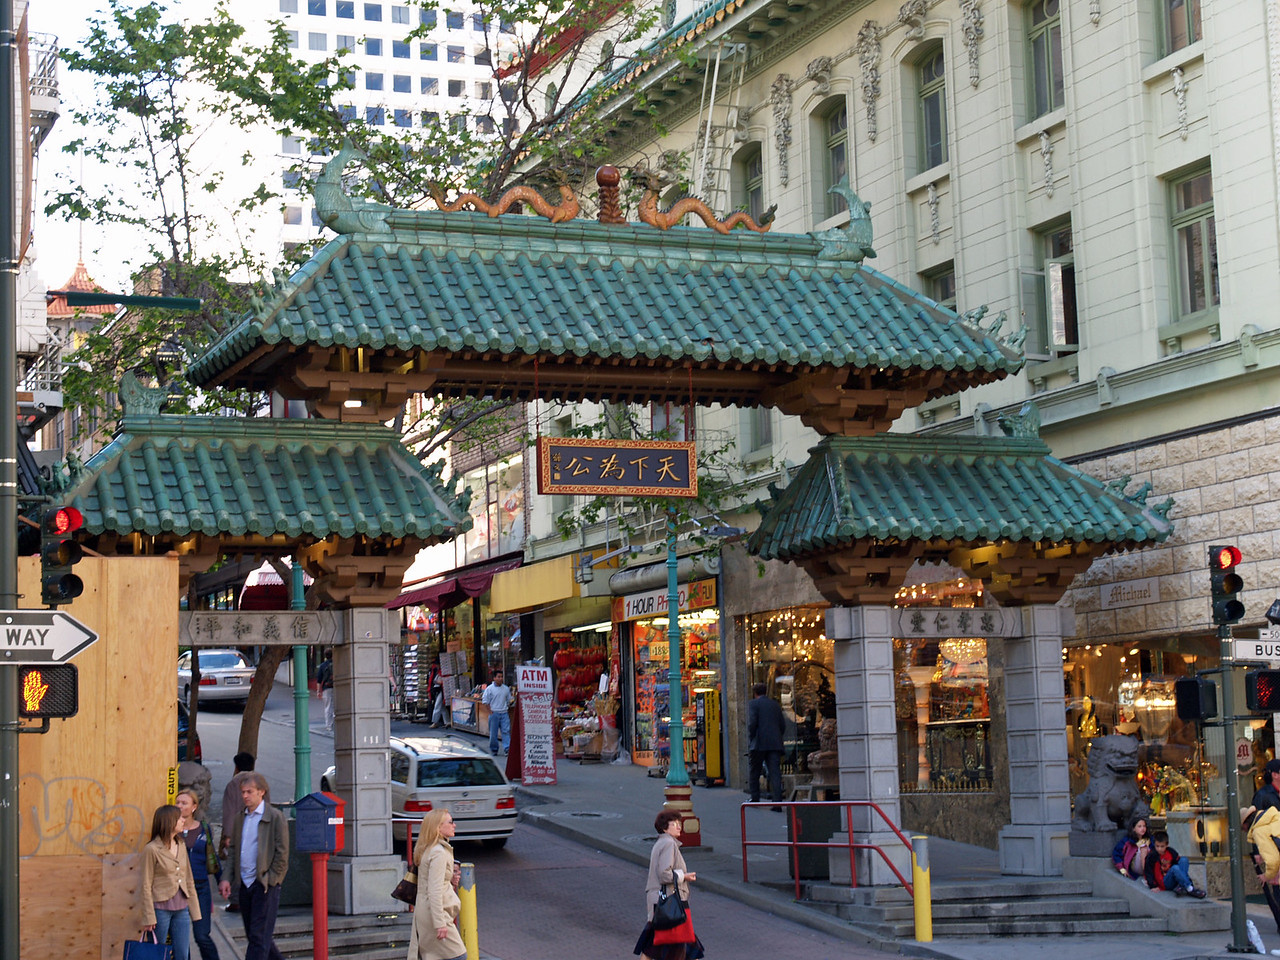 """Built in 1970, this gate is the southern entrance to Chinatown. It is inscribed with the saying """"All under heaven is for the good of the people,"""" by Dr. Sun Yat-sen."""